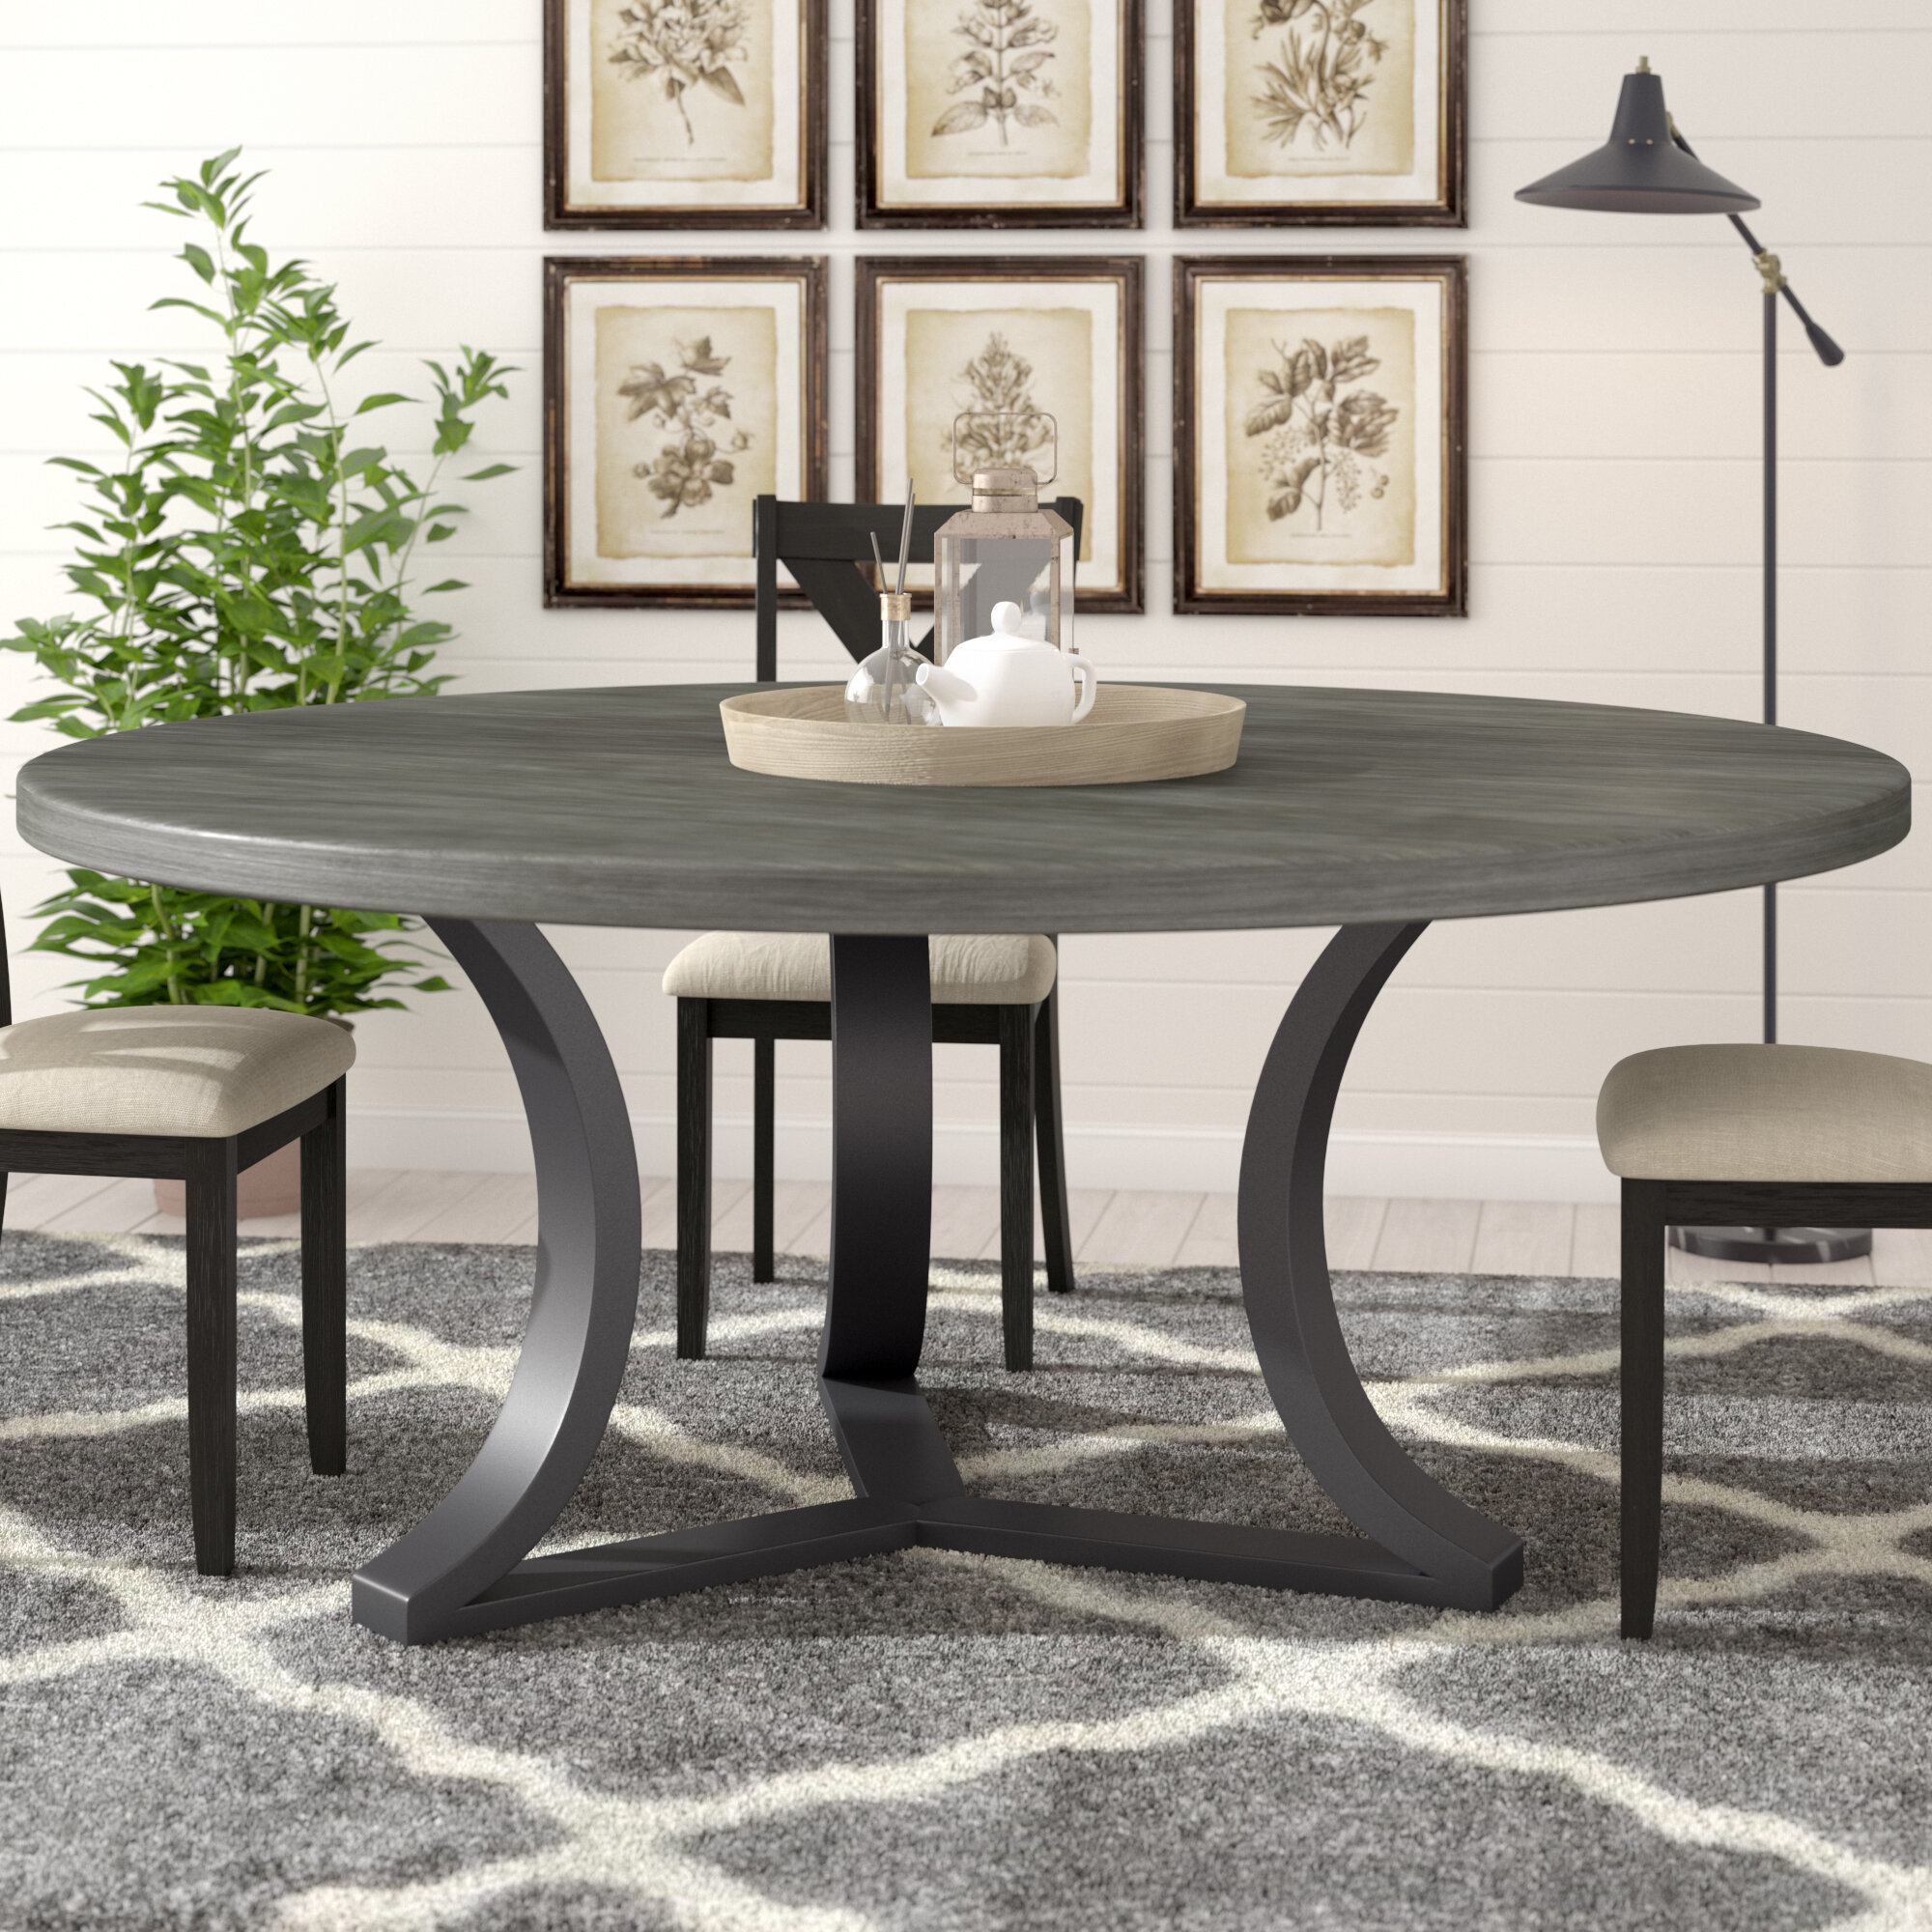 Assembled kitchen dining tables